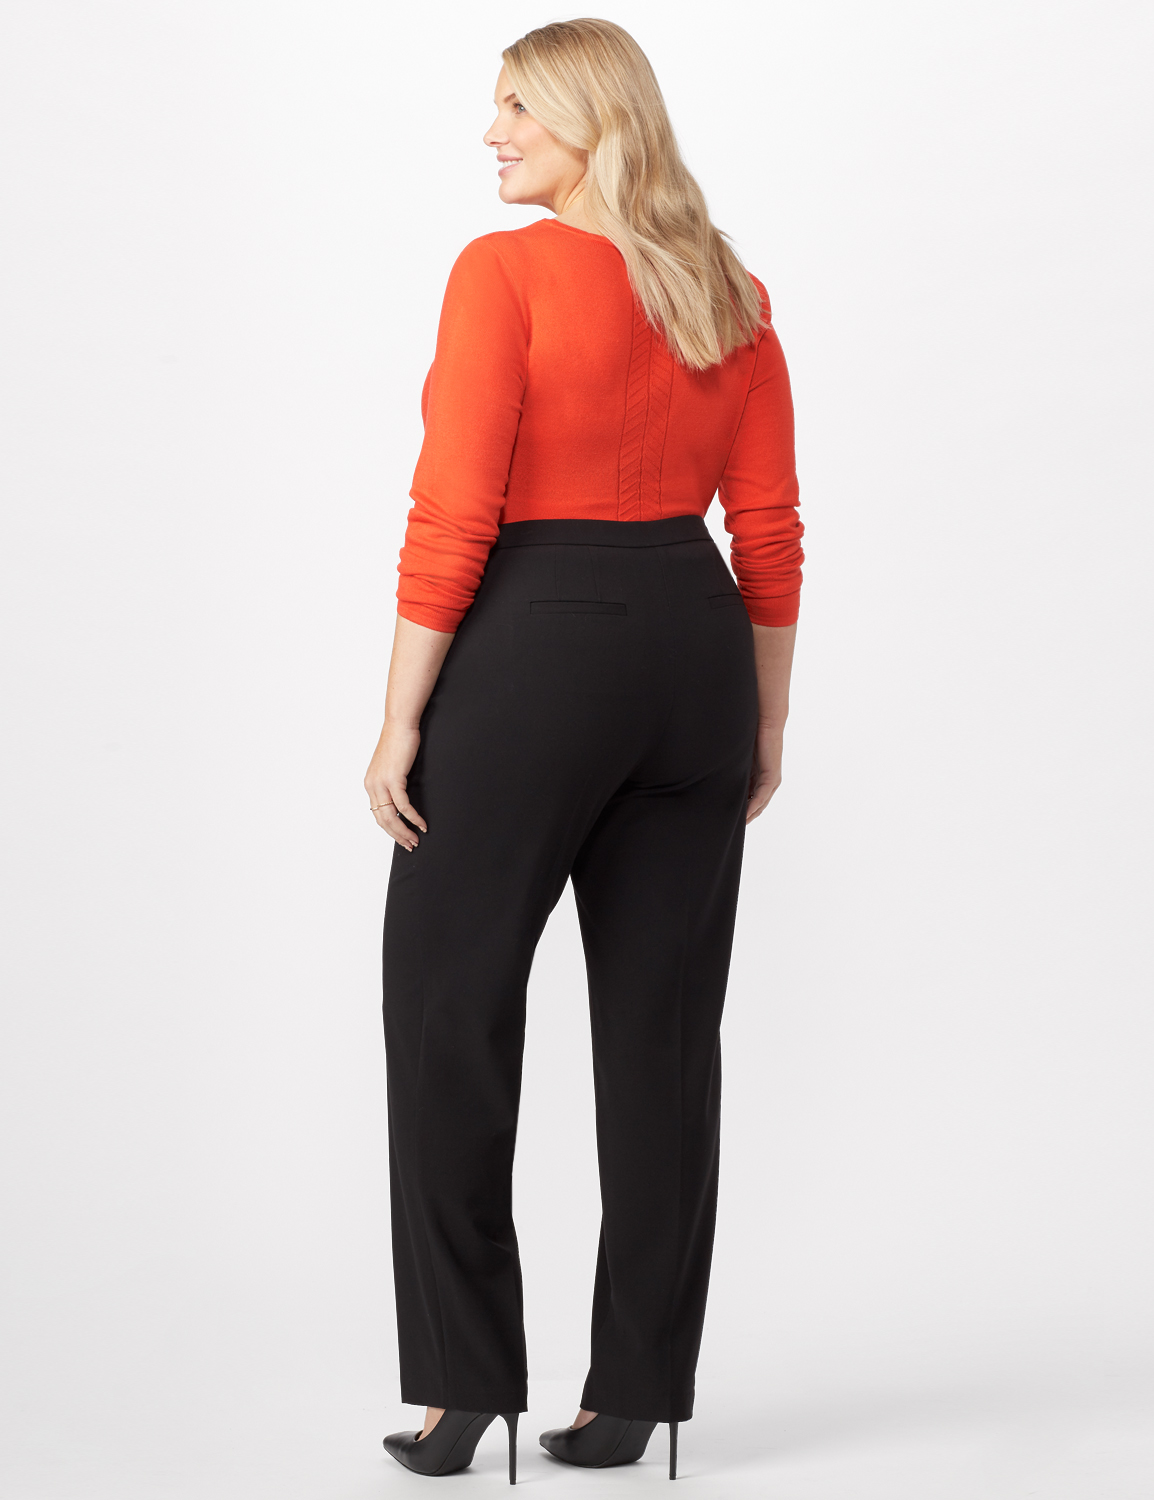 *PRE-SALE* Secret Agent Trouser with Cateye Pocket and Zipper -Black - Back